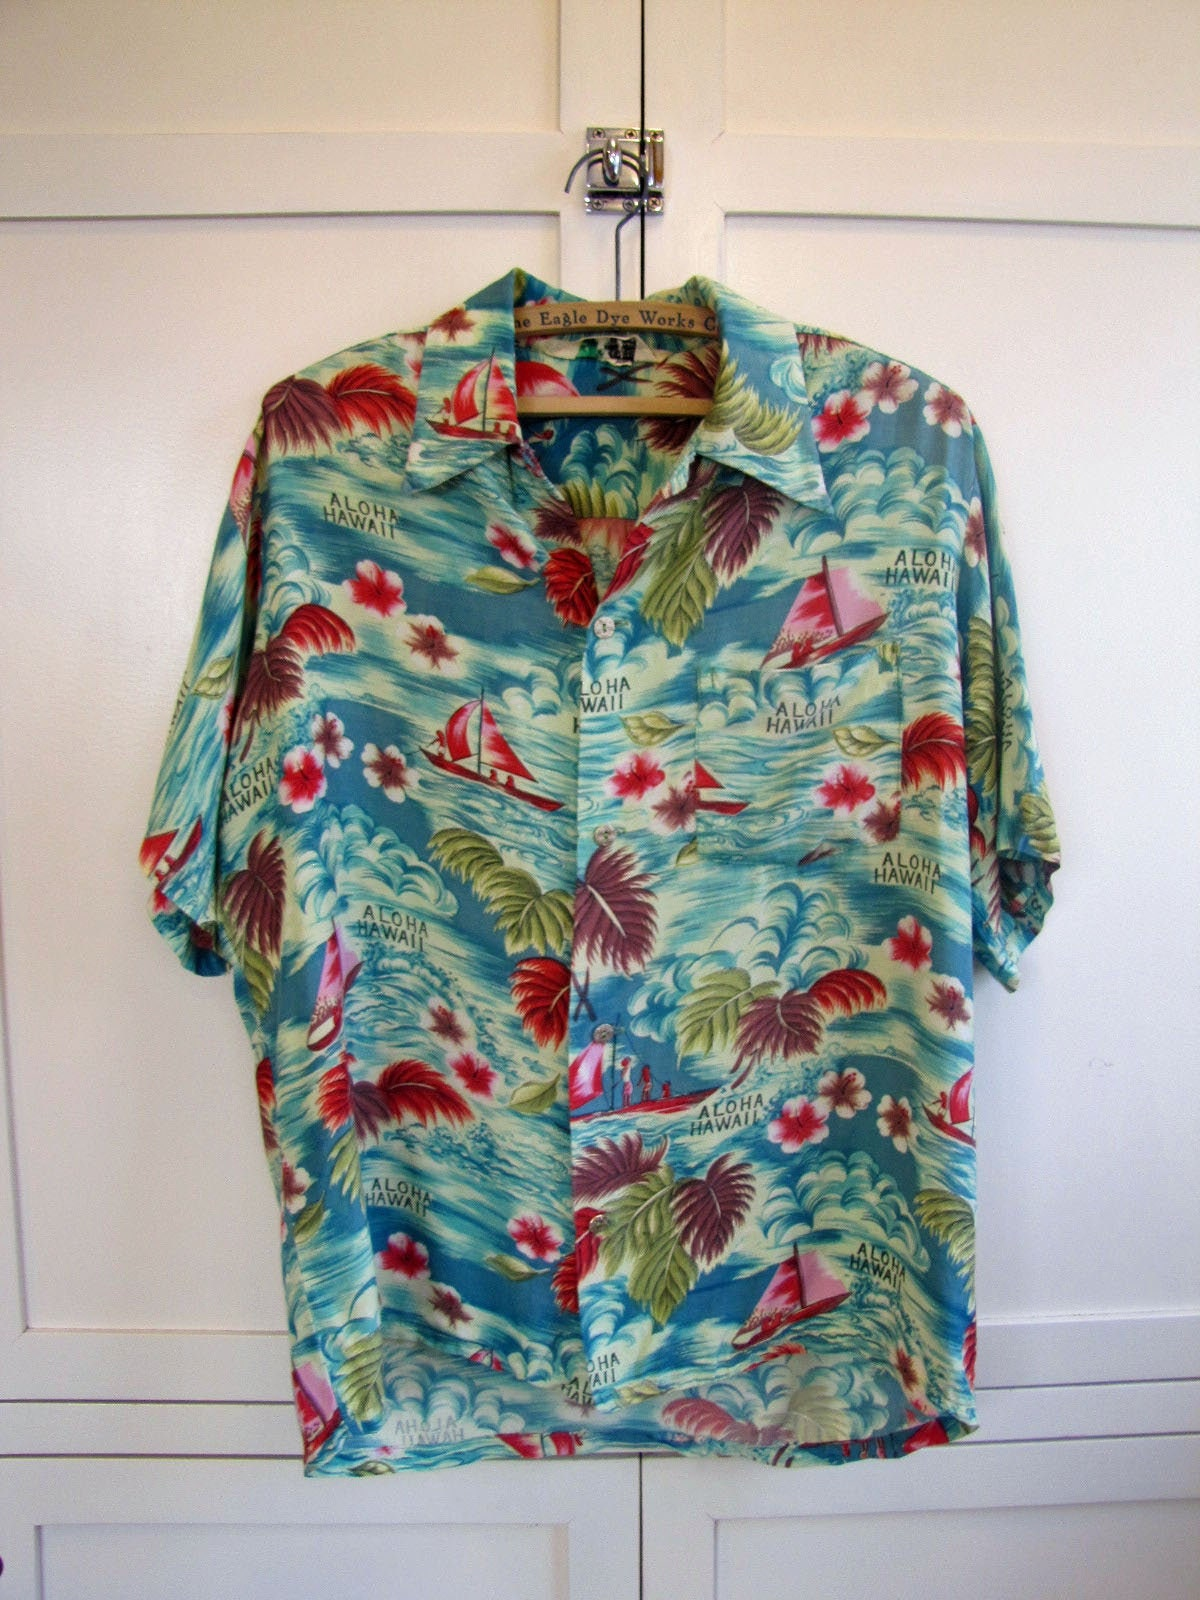 1970s Mens Shirt Styles – Vintage 70s Shirts for Guys 1960s Island Fashions Rayon Teal  Red Hawaiian Down Shirt, Mens Medium, Made in Japan, Teal, Red, Fashions, 60s $0.00 AT vintagedancer.com